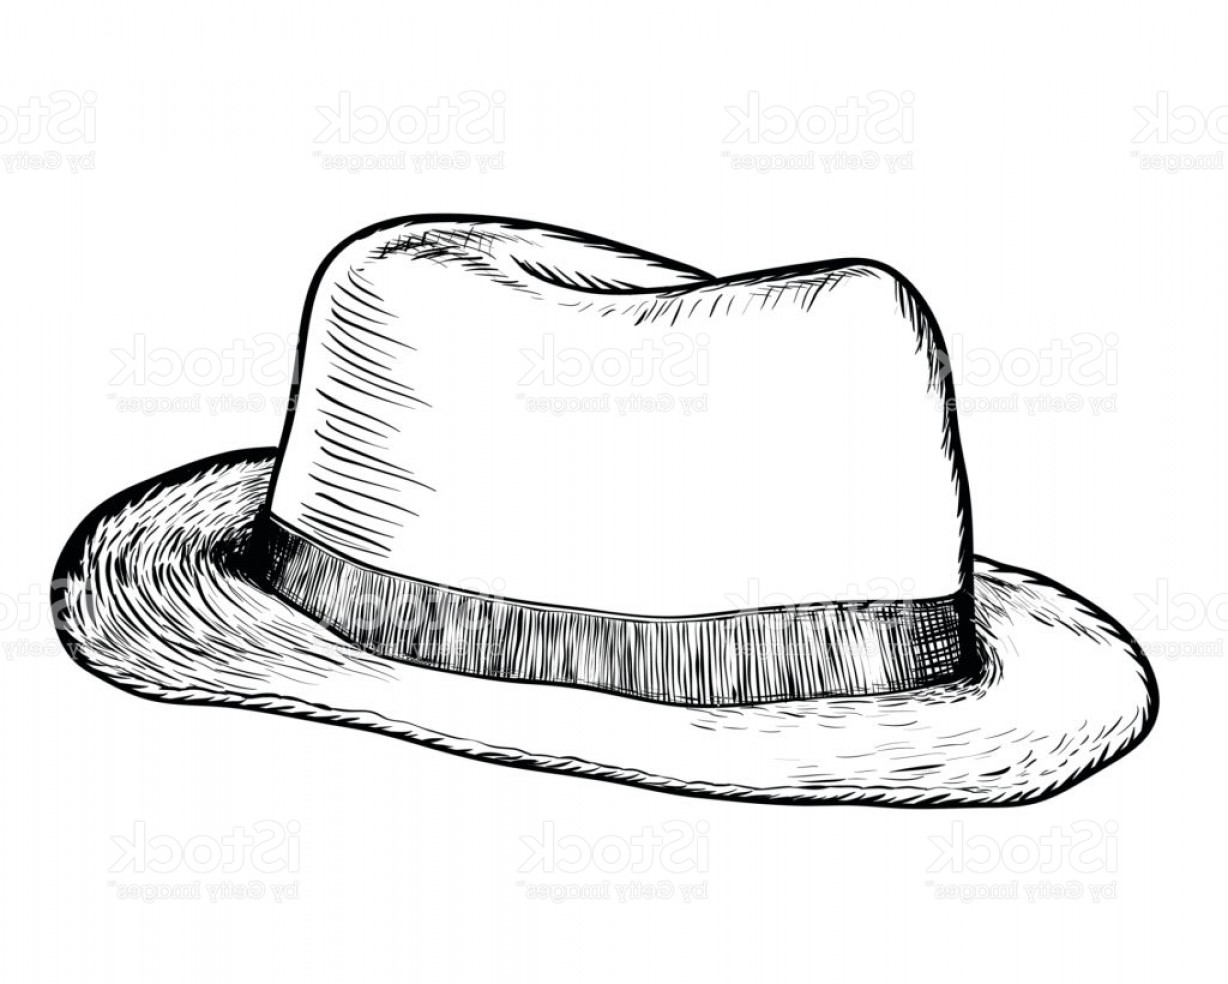 Texas Vector Drawing: Hand Drawing Of Cowboy Hat Vector Drawn Illustration Gm